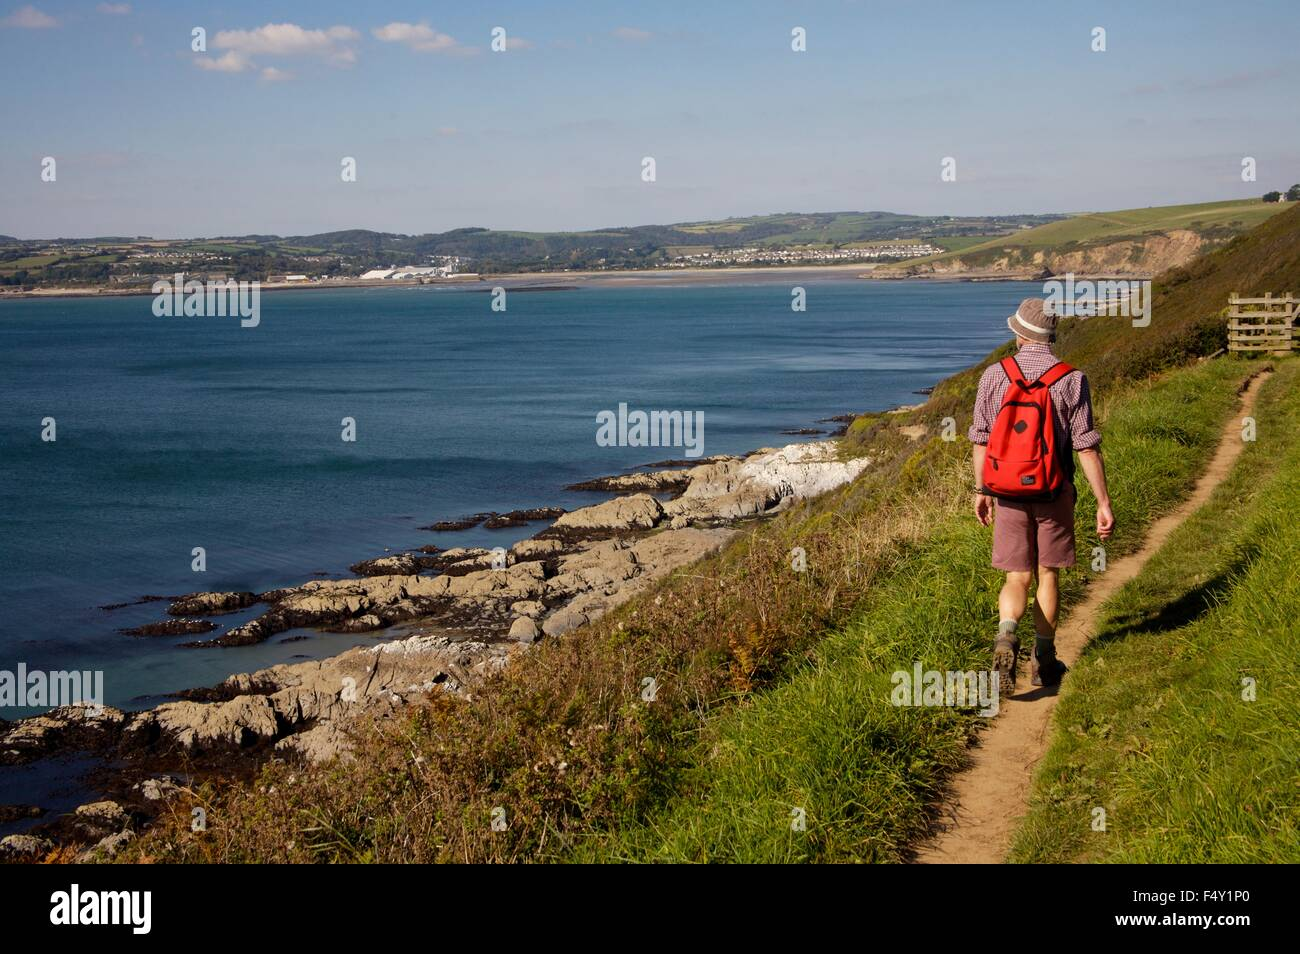 St Austell Bay, Cornwall, approaching Par Sands. - Stock Image